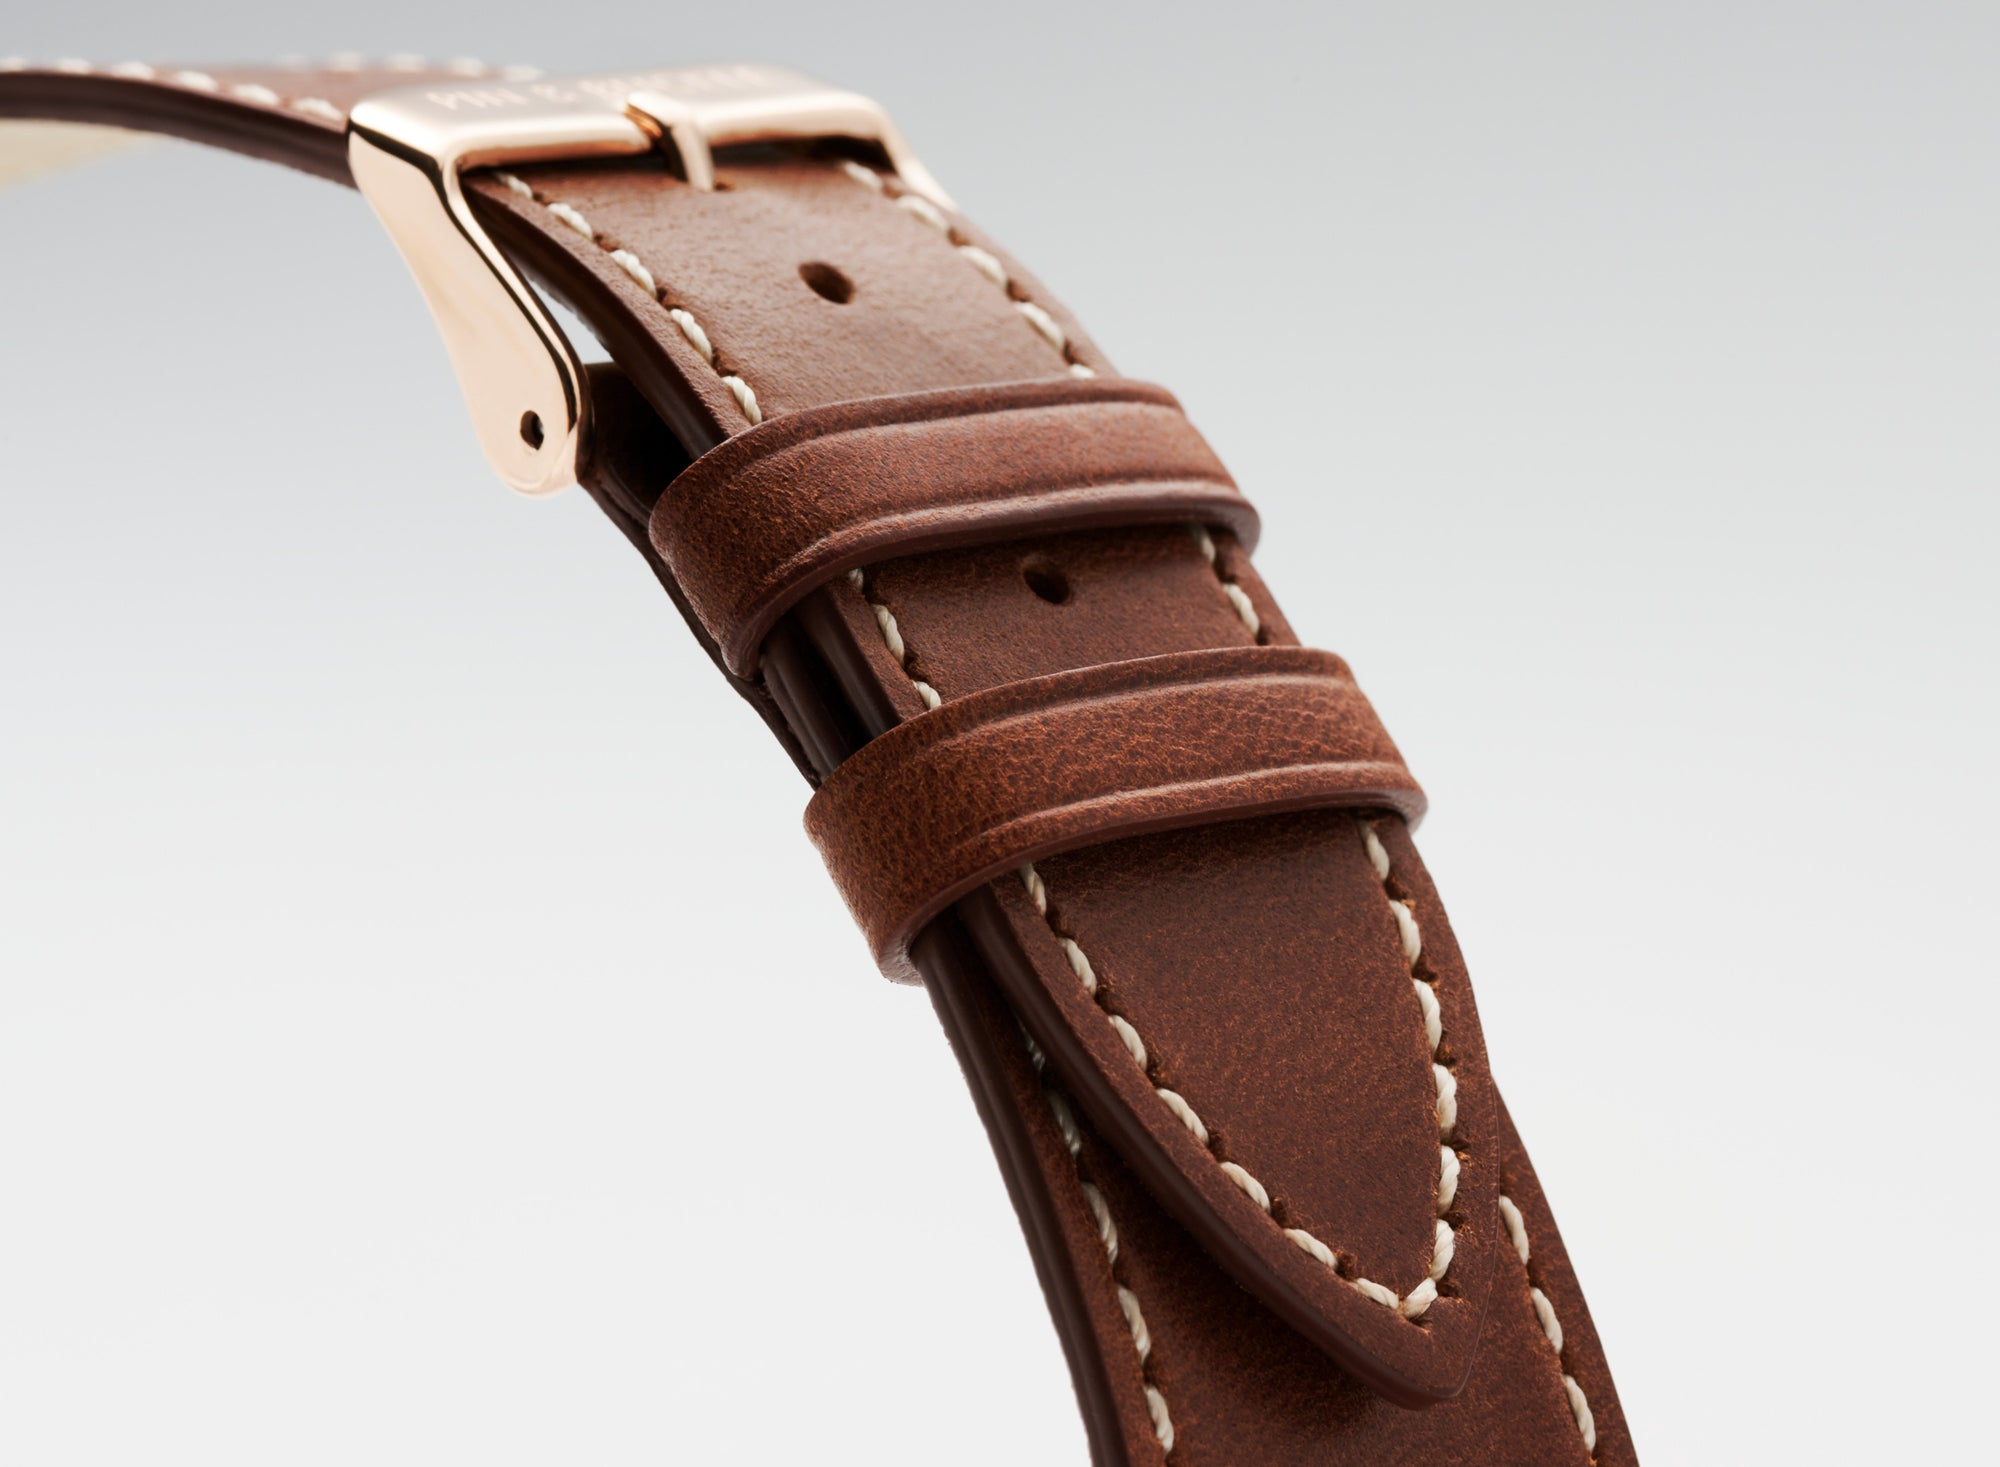 Pin and Buckle Apple Watch Bands - Full Grain Vegetable Tanned Leather - Luxe - Chestnut Brown - Vegetable Tanned Full Grain Leather